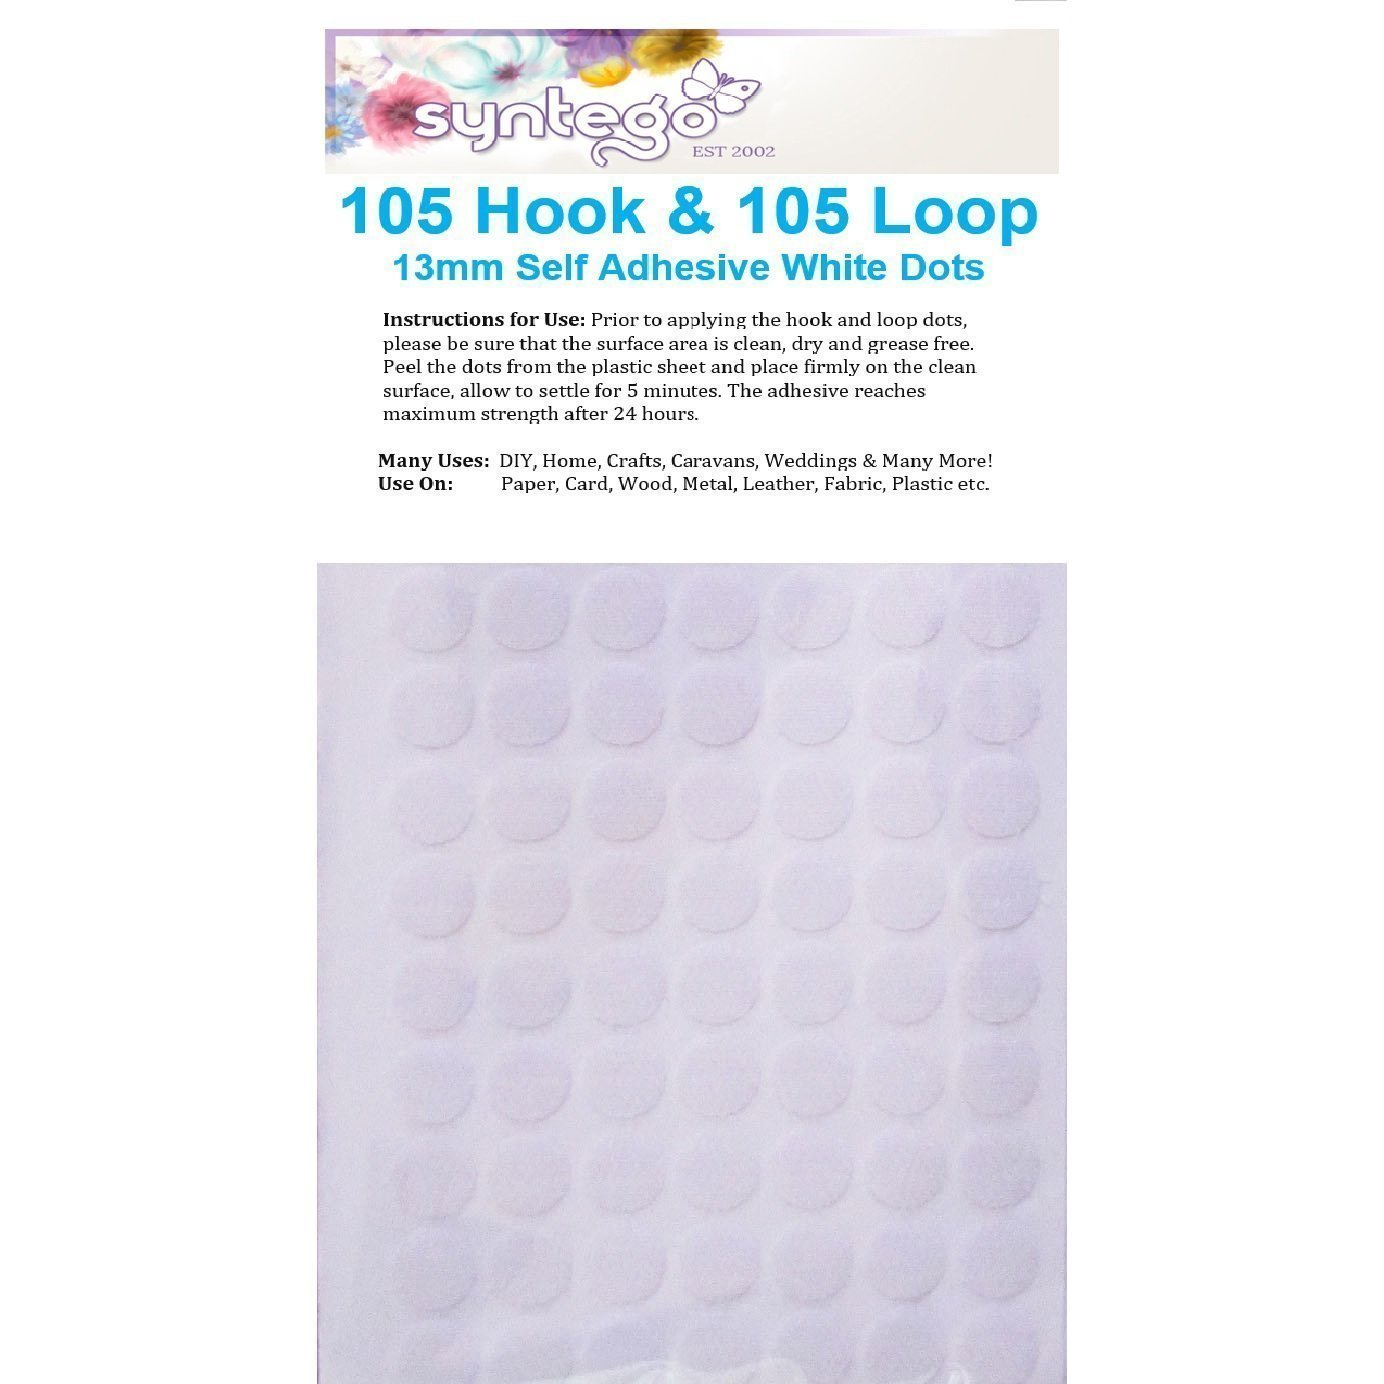 Syntego 210 Sticky Dots White 13mm Self Adhesive - 105 Hooks Plus 105 Loops